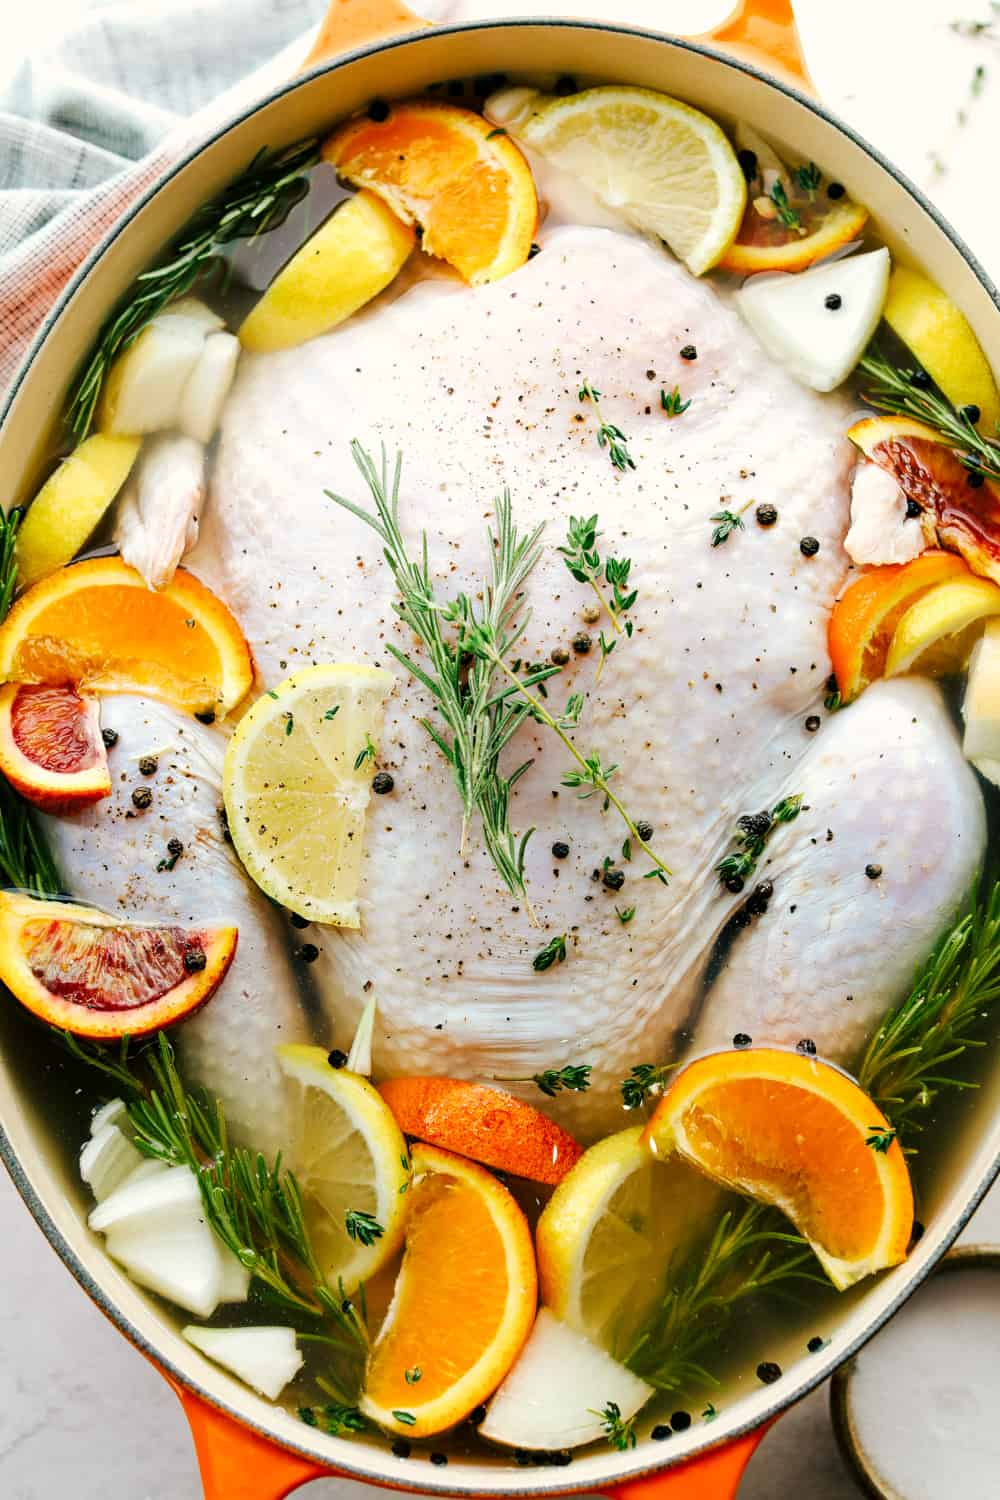 Turkey in a pot being submerged by water and other seasonings for a brine.